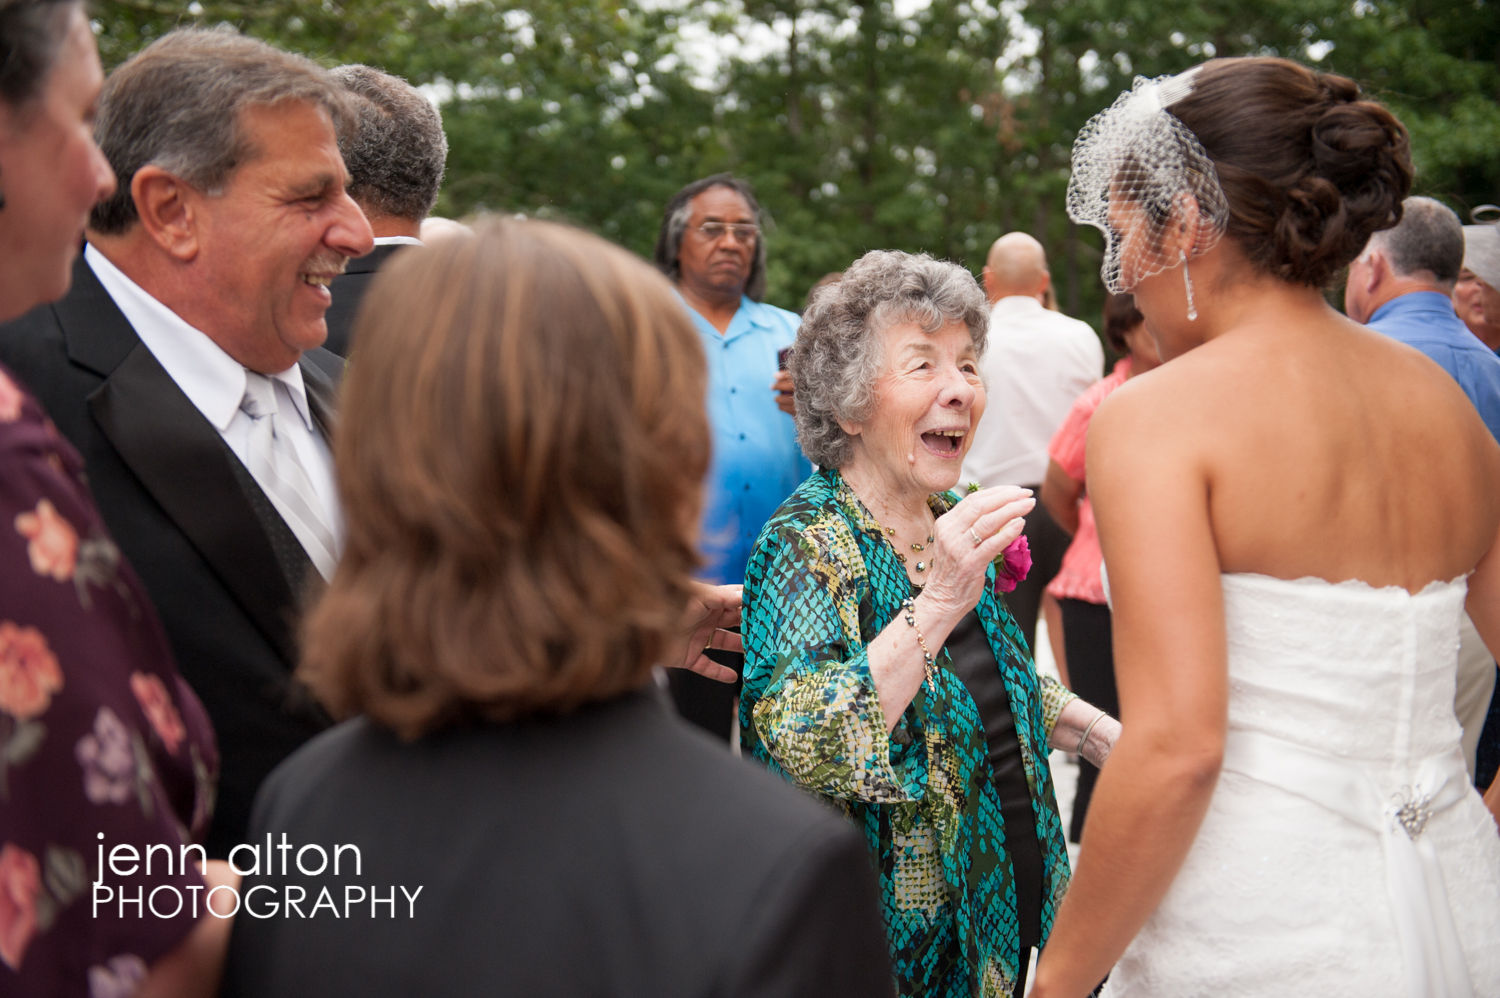 Bride accepting congrats from family and friends after ceremony, Cape Cod Wedding, Mashpee Old Indian Meeting House